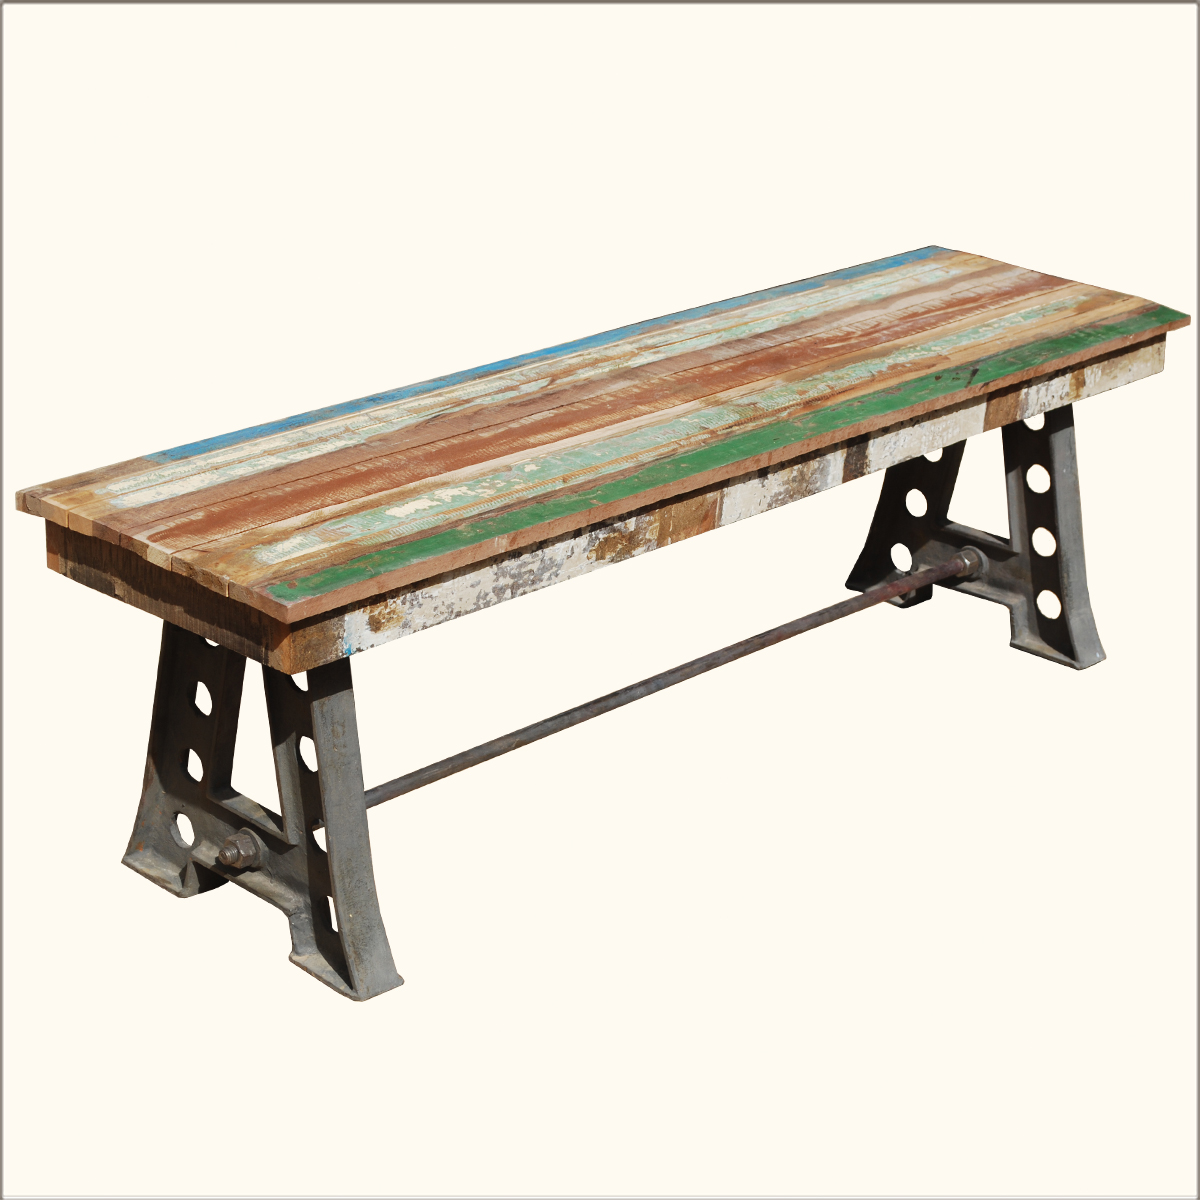 Rustic solid teak wood industrial wrought iron bench outdoor patio furniture ebay Wrought iron outdoor bench